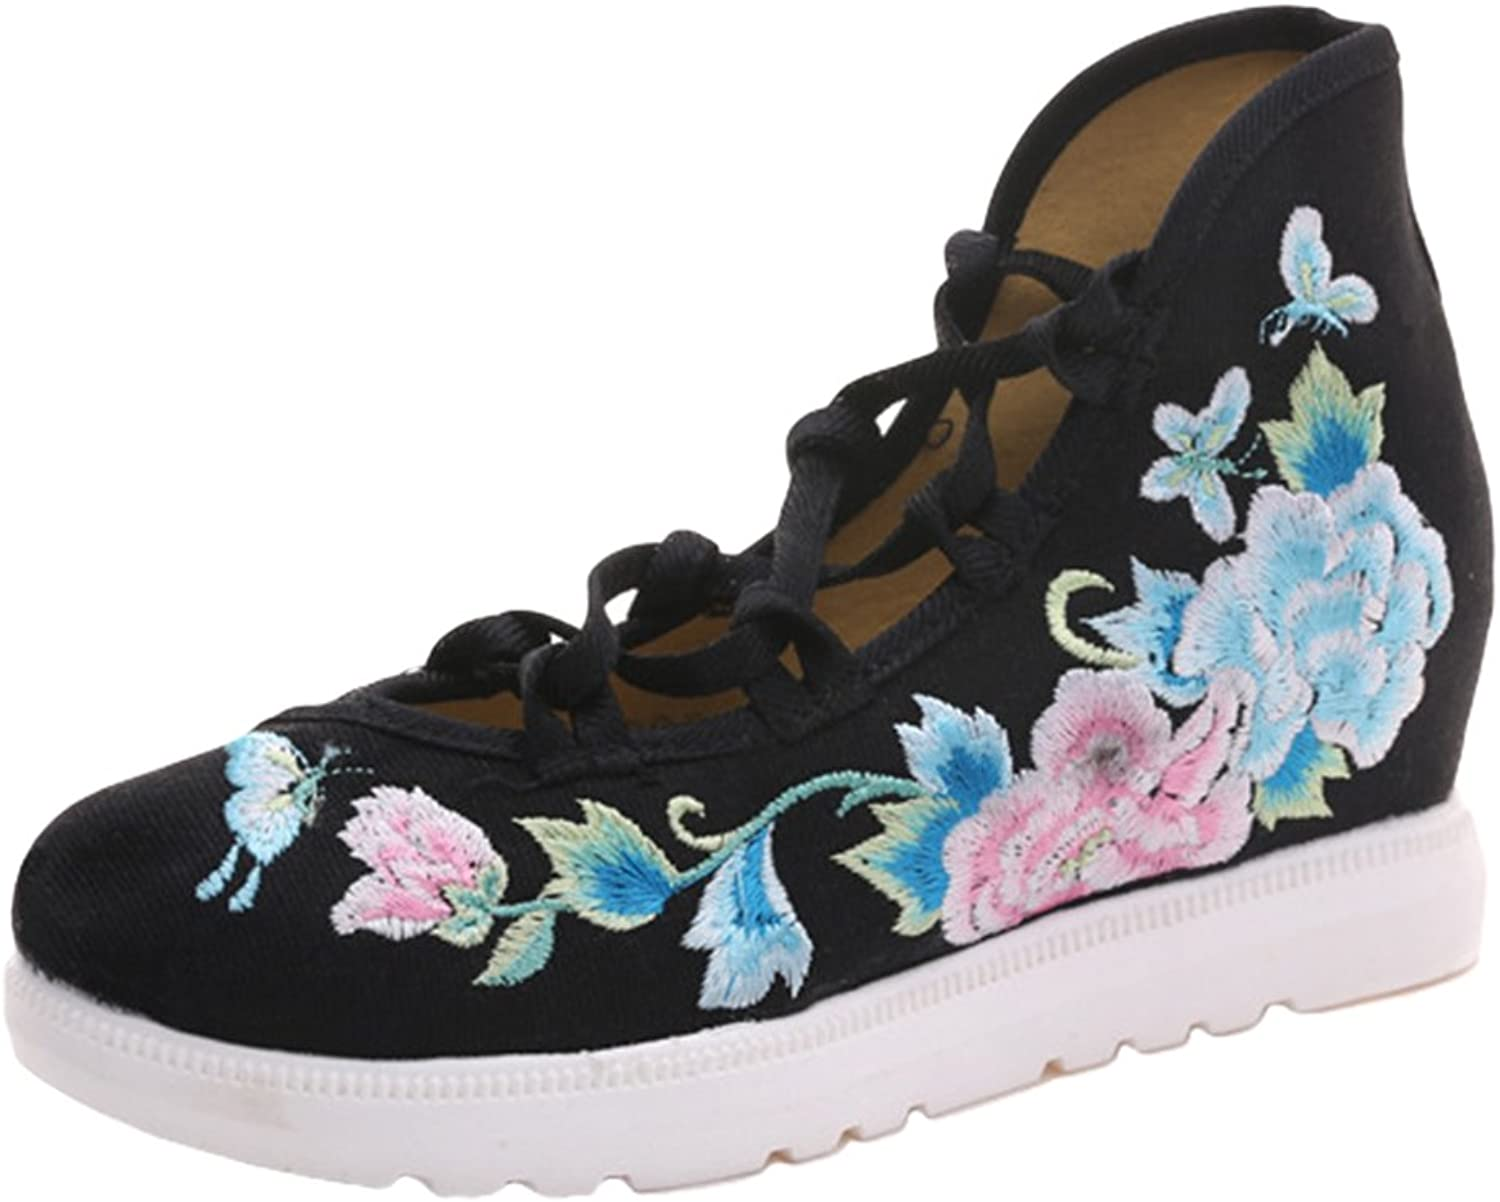 AvaCostume Womens Floral Embroidery Increase Wedge Heel Lace-up Sandals